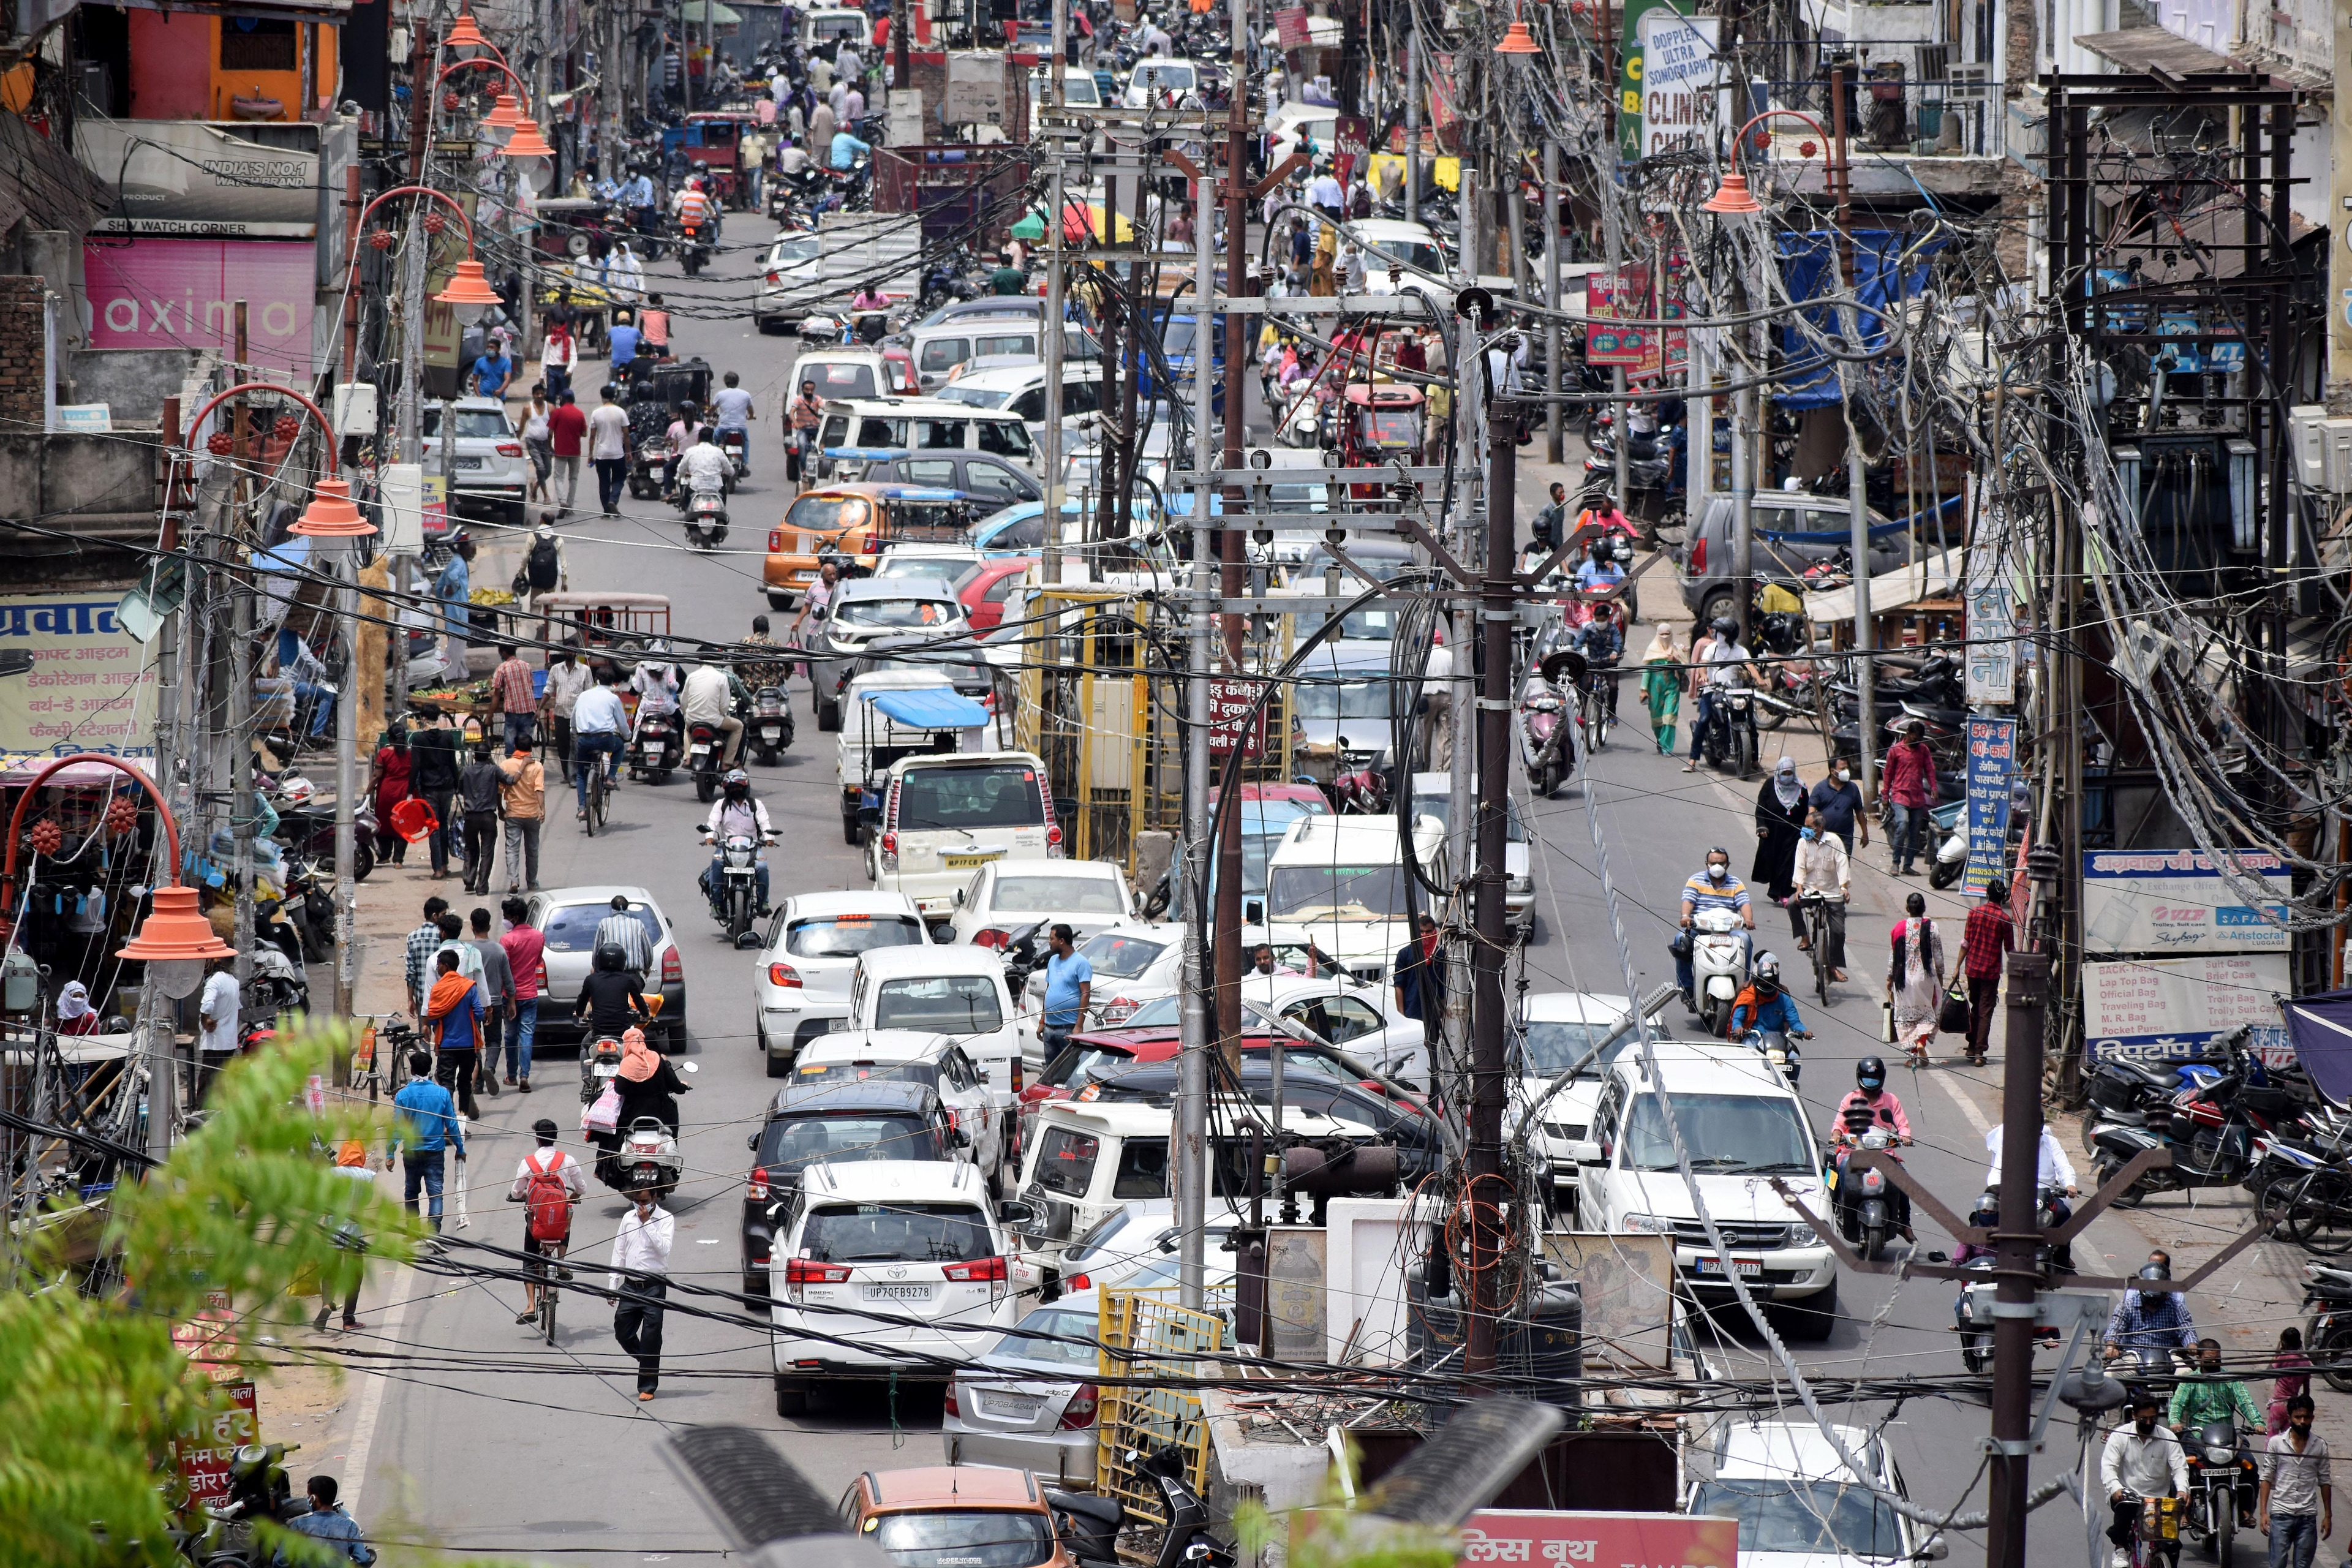 Traffic seen on the raod after some relaxation during coronavirus lockdown, in Meerut.